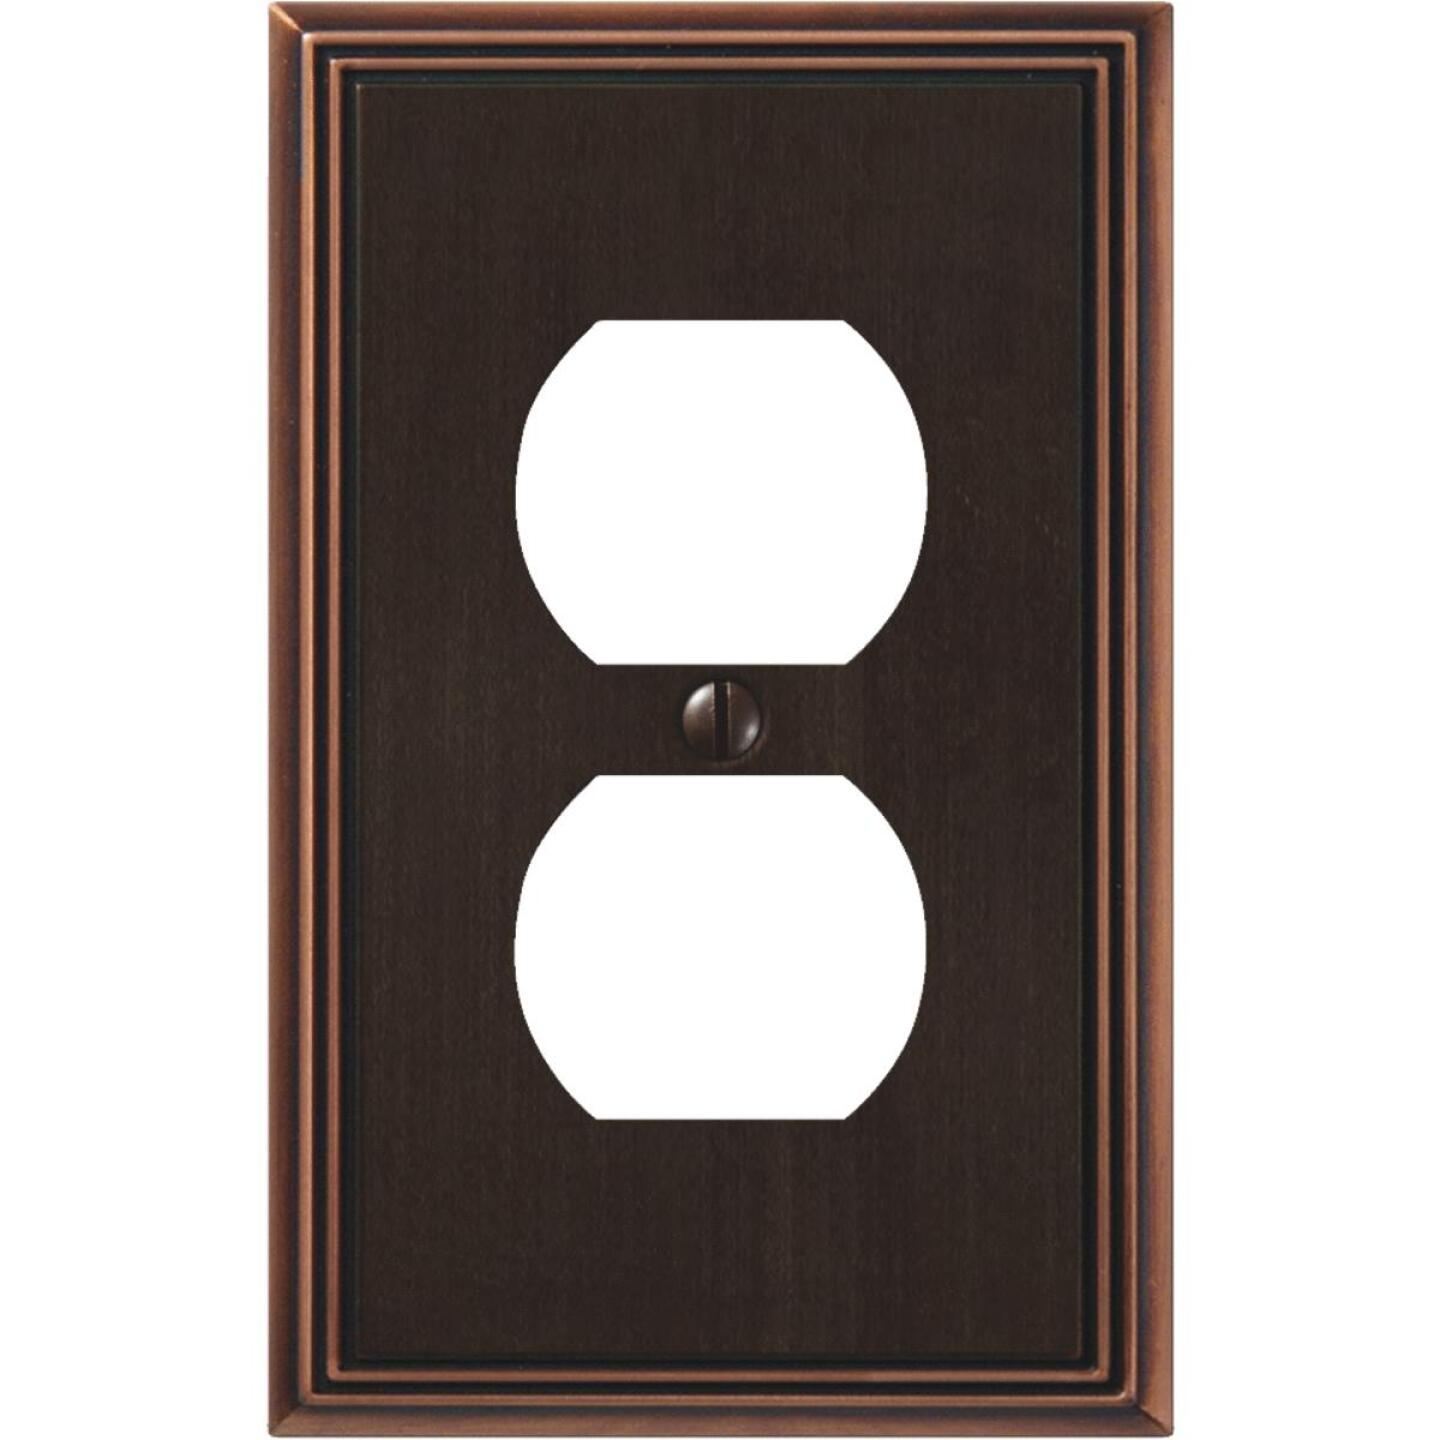 Amerelle Metro Line 1-Gang Cast Metal Outlet Wall Plate, Aged Bronze Image 1